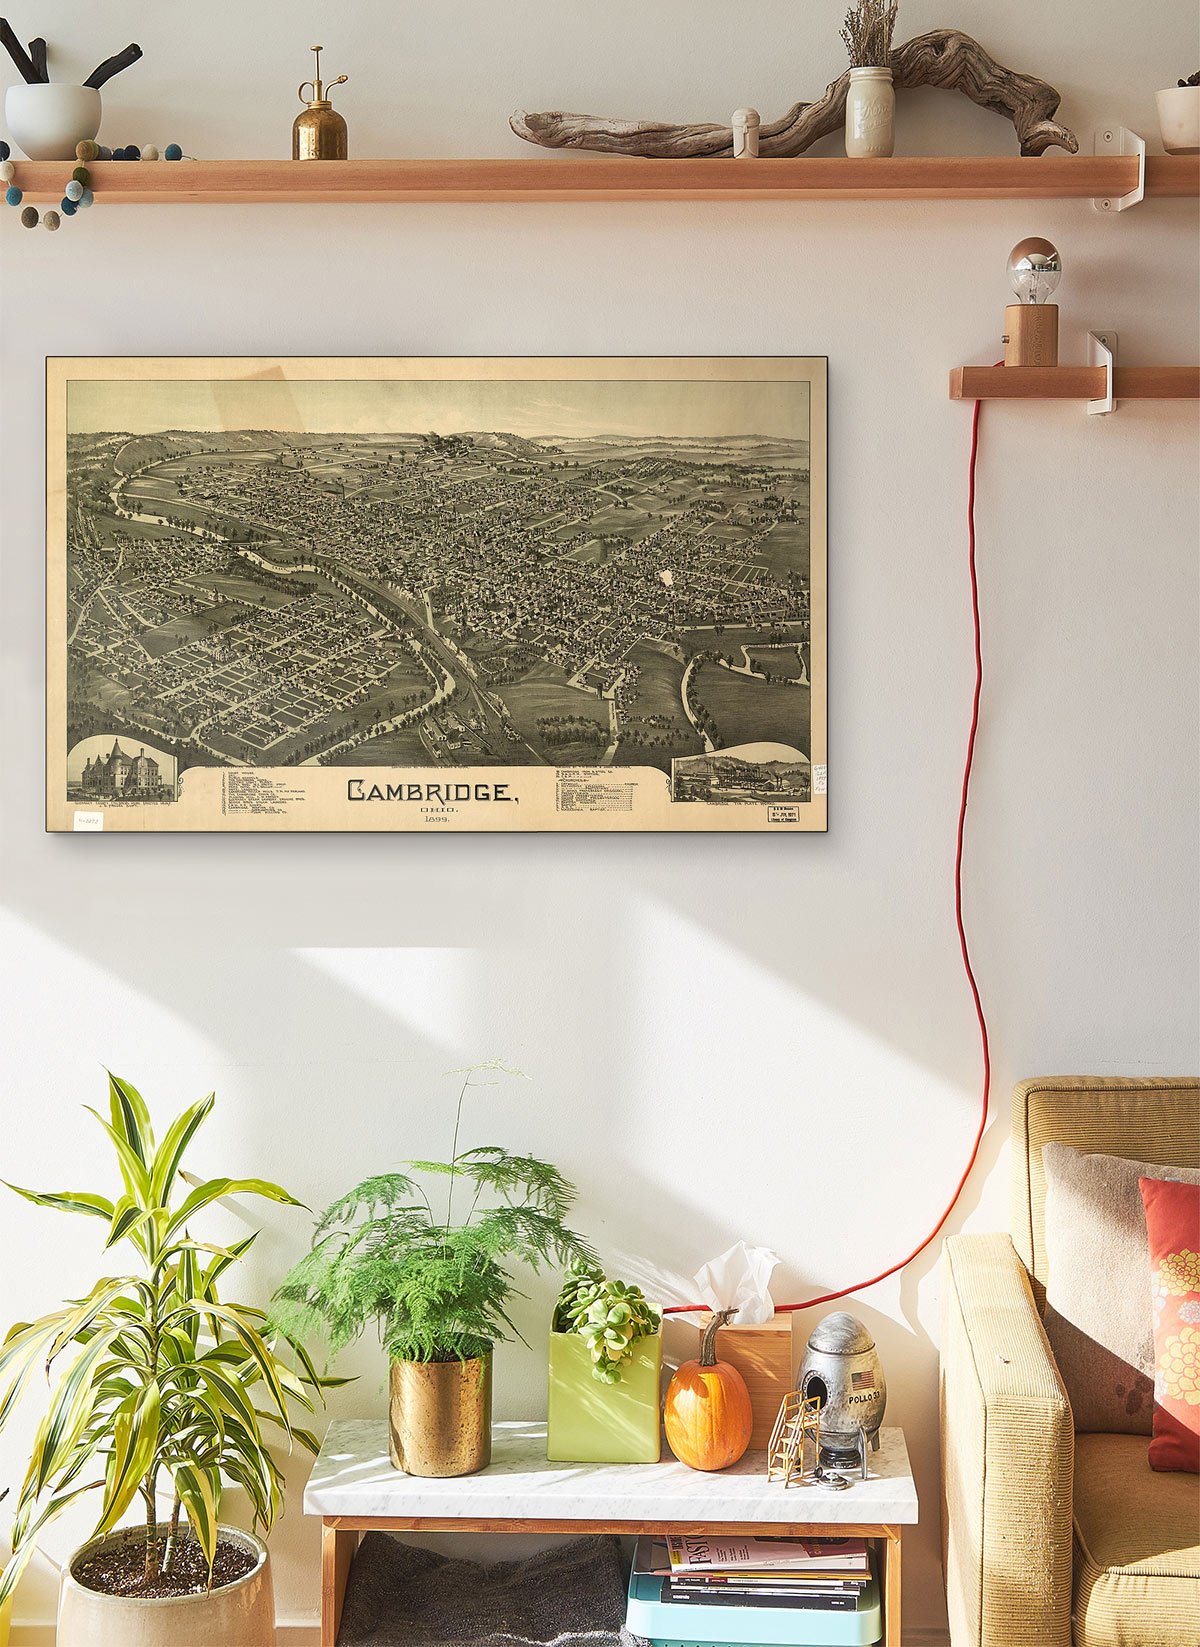 Cambridge Ohio 1899 LARGE Vintage Map